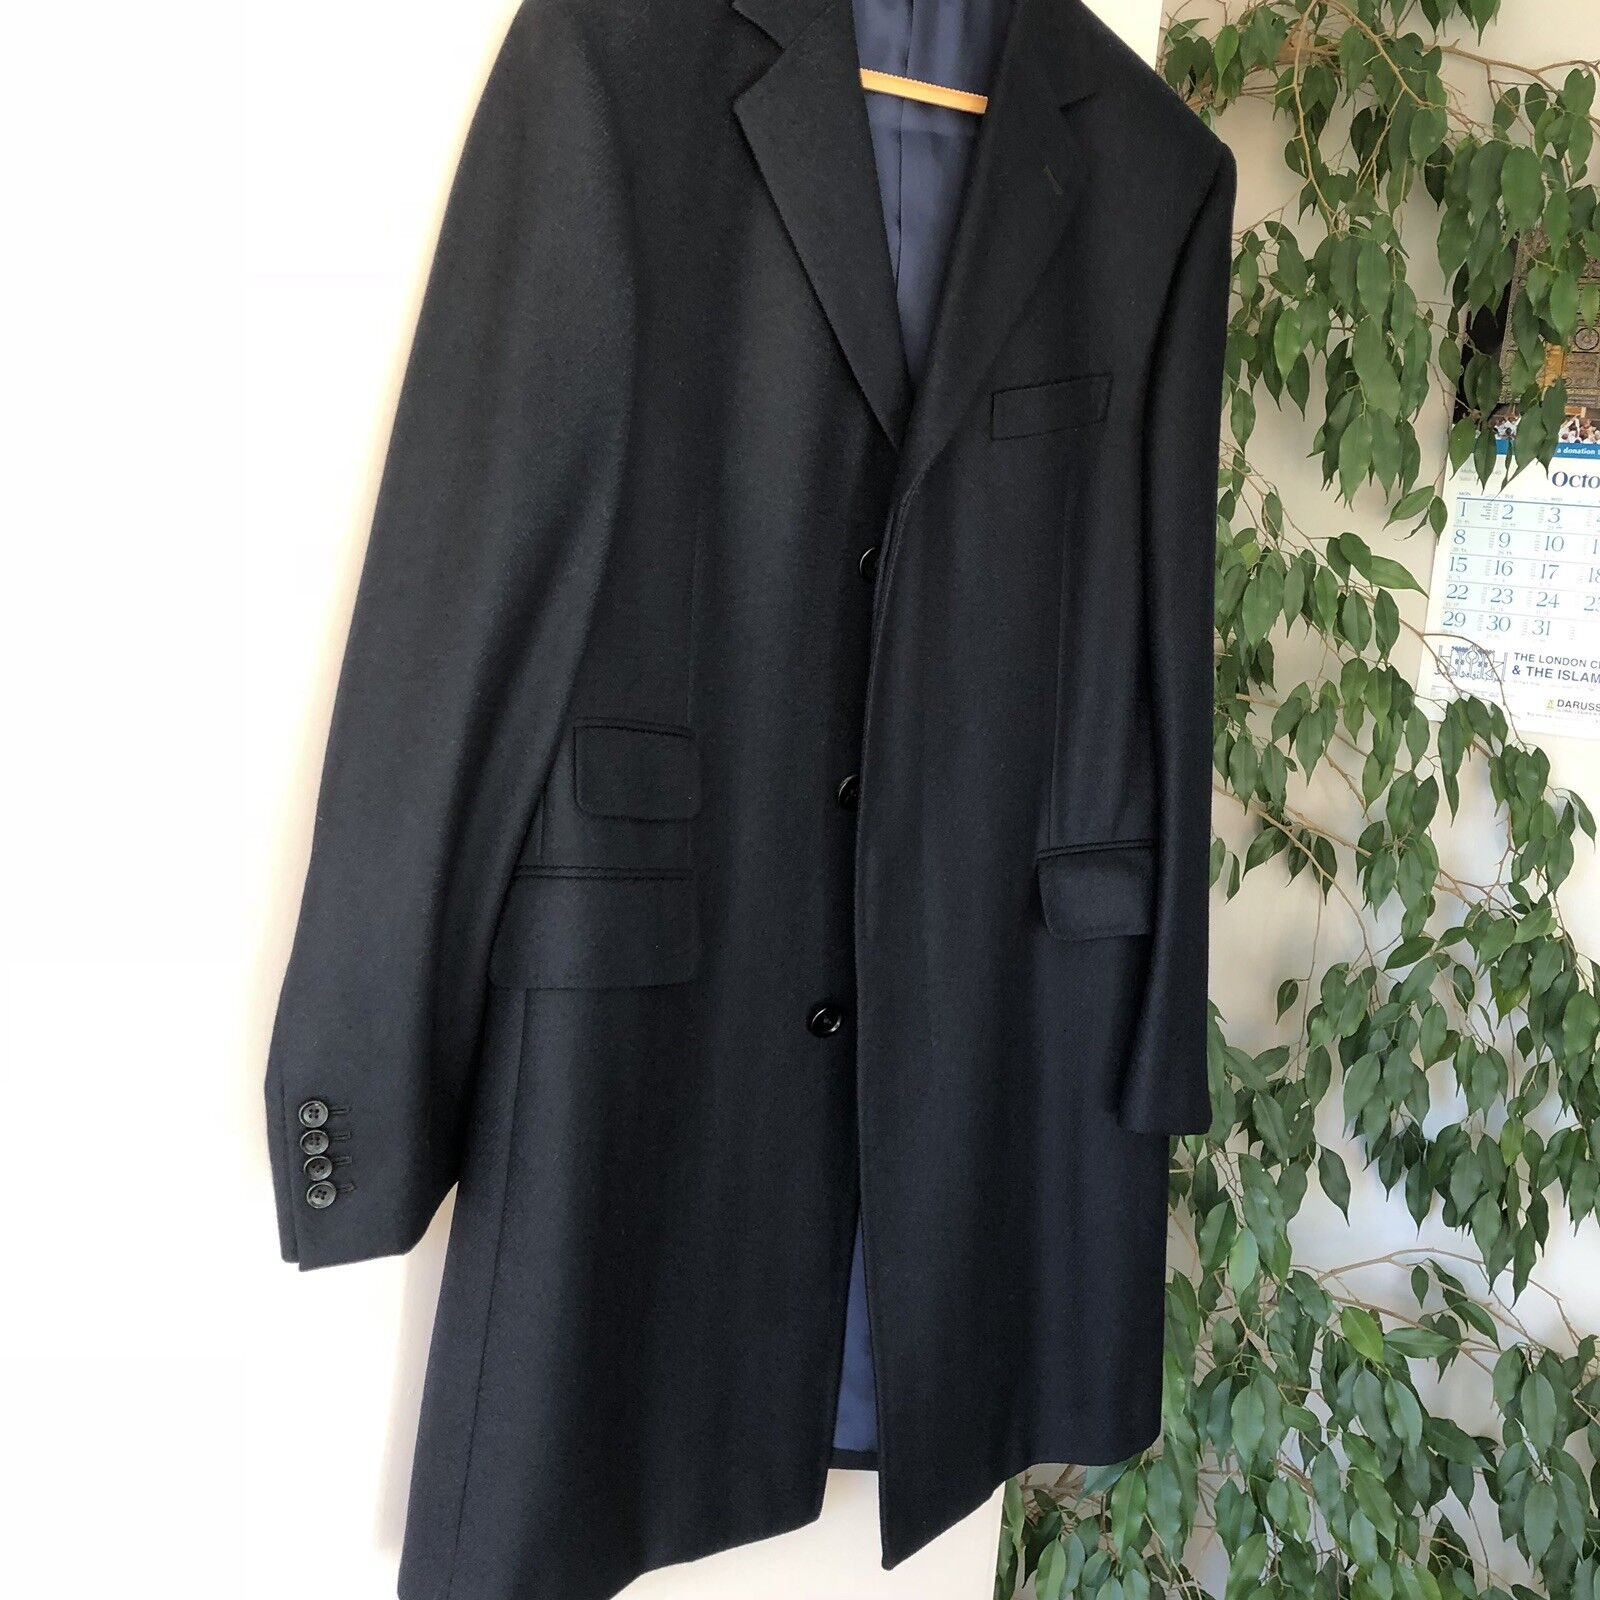 "Overcoat In Pure Wool HAND FINISHED In Navy Größe 42"" BN by M & S"